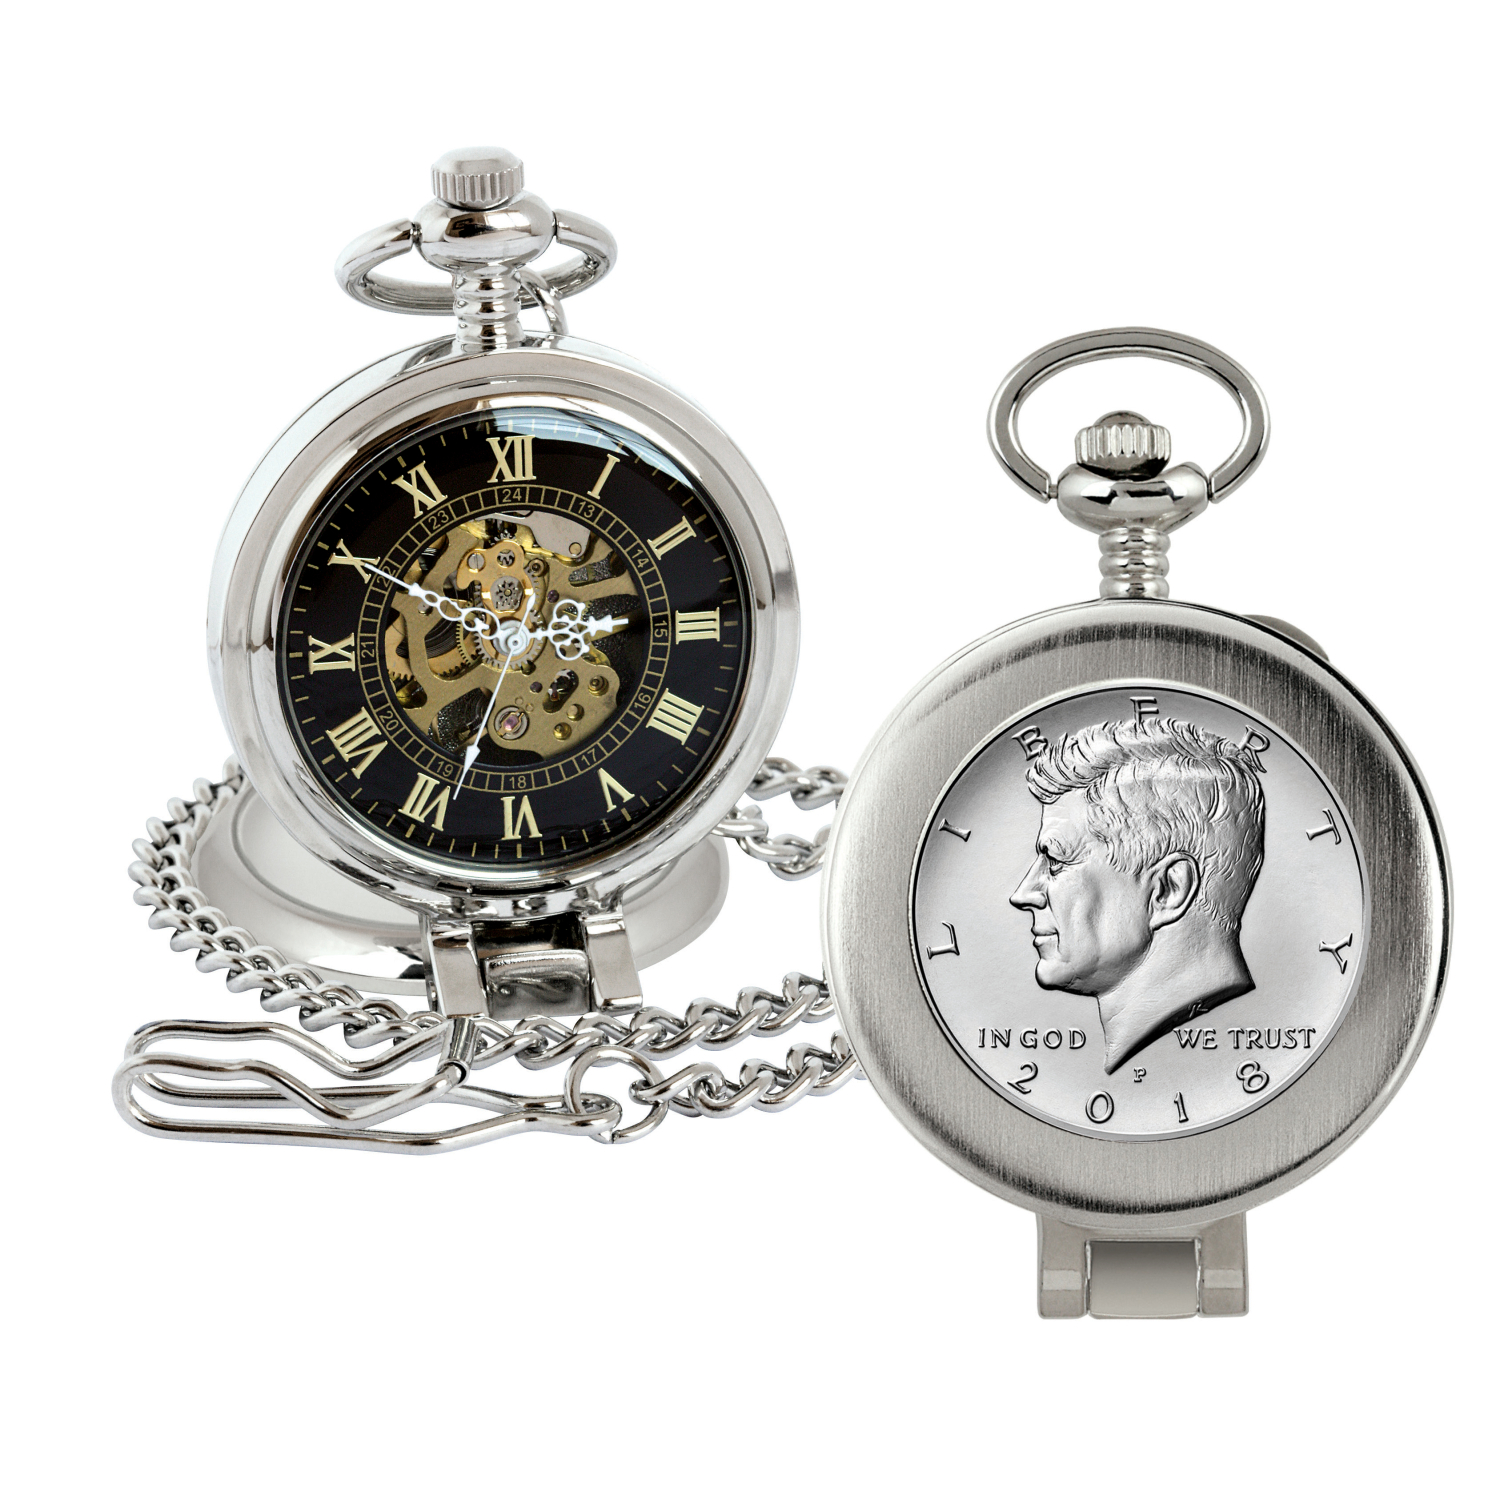 Jfk Half Dollar Coin Pocket Watch With Skeleton Movement - Magnifying Glass - Black Dial With Gold Roman Numerals